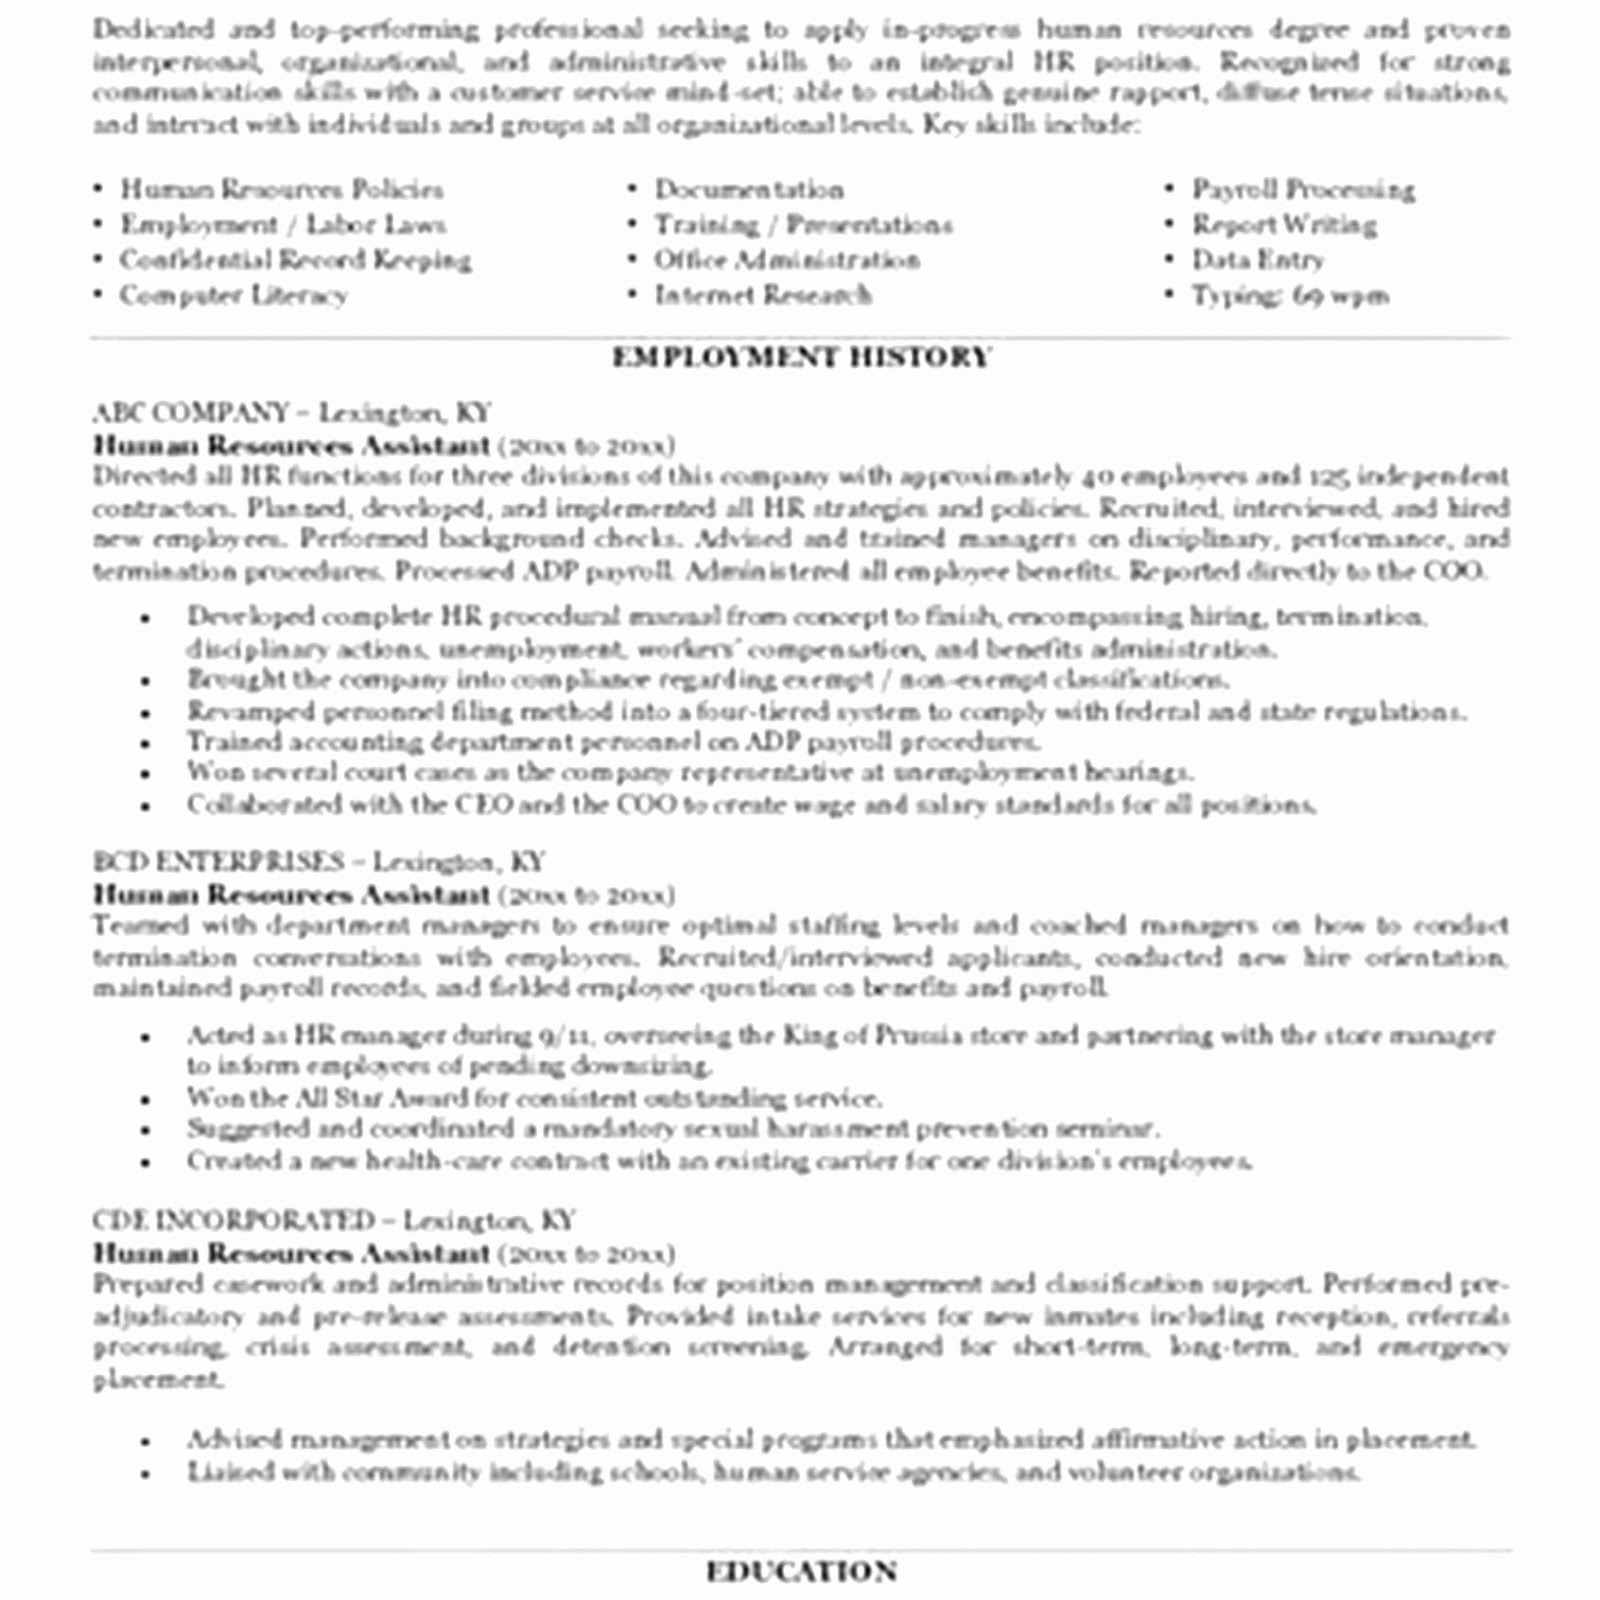 Administrative Assistant Resume, administrative assistant resume summary, administrative assistant resume examples